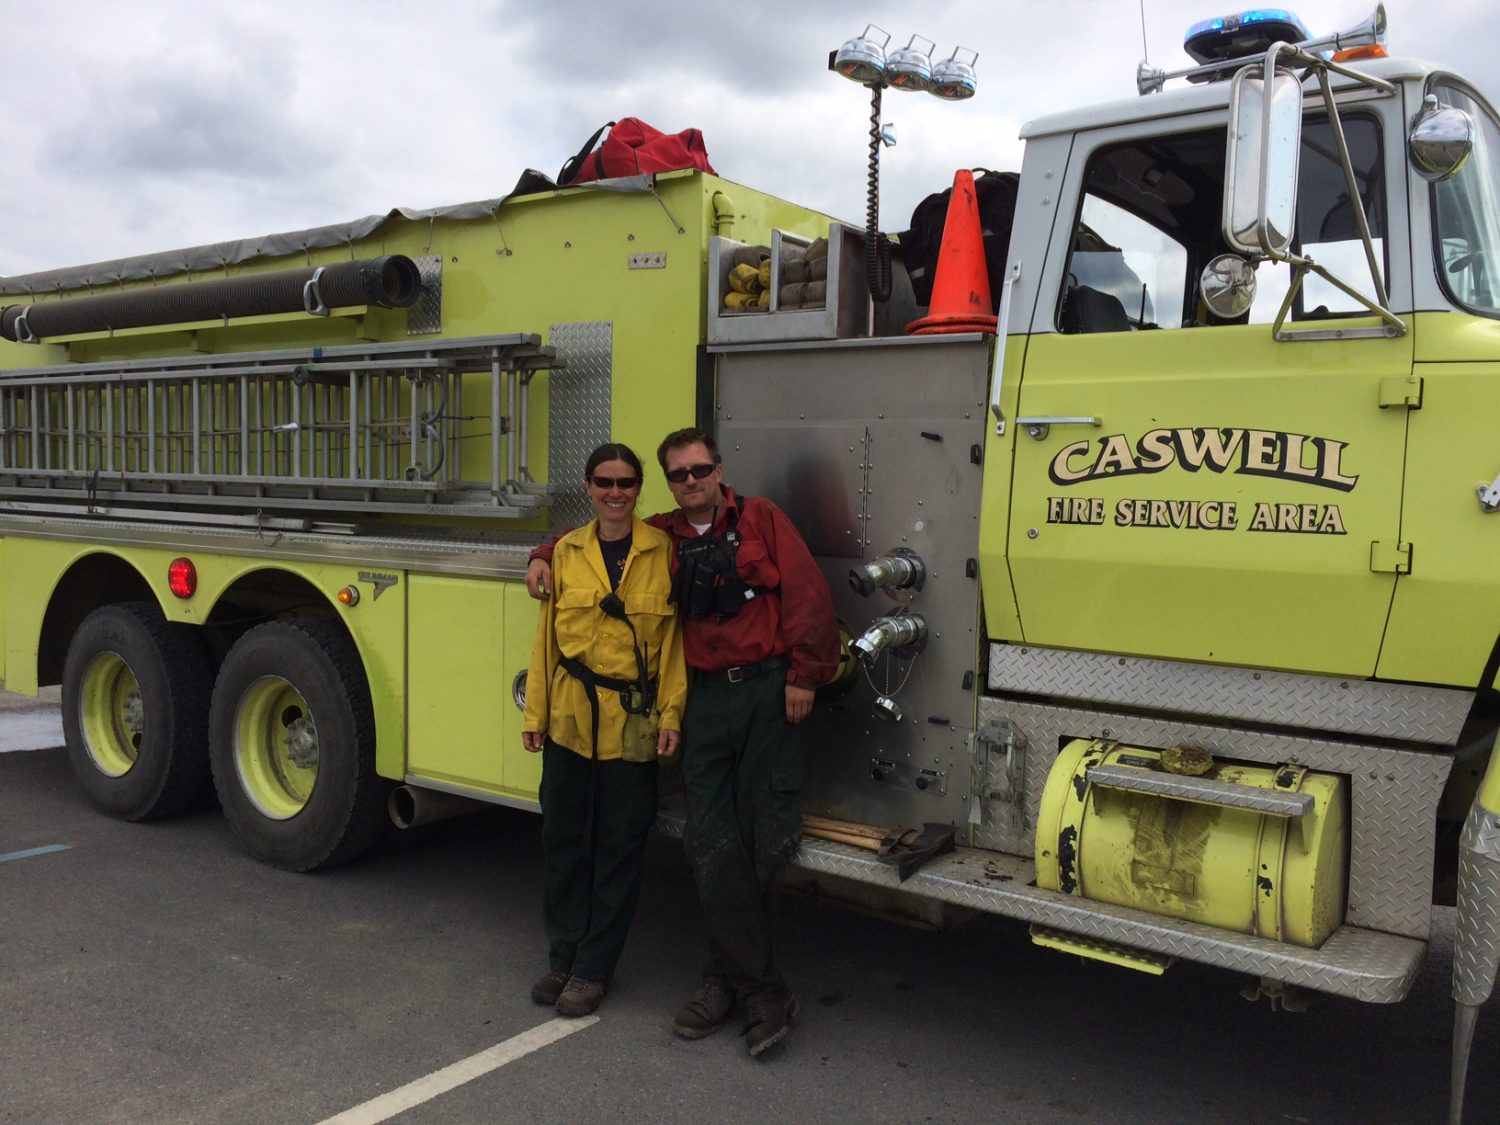 Alaska matanuska susitna county talkeetna - All Involved With The Massive Effort Including Firefighters The Mat Su Borough Red Cross And Out Of State Help Are Beginning To Feel